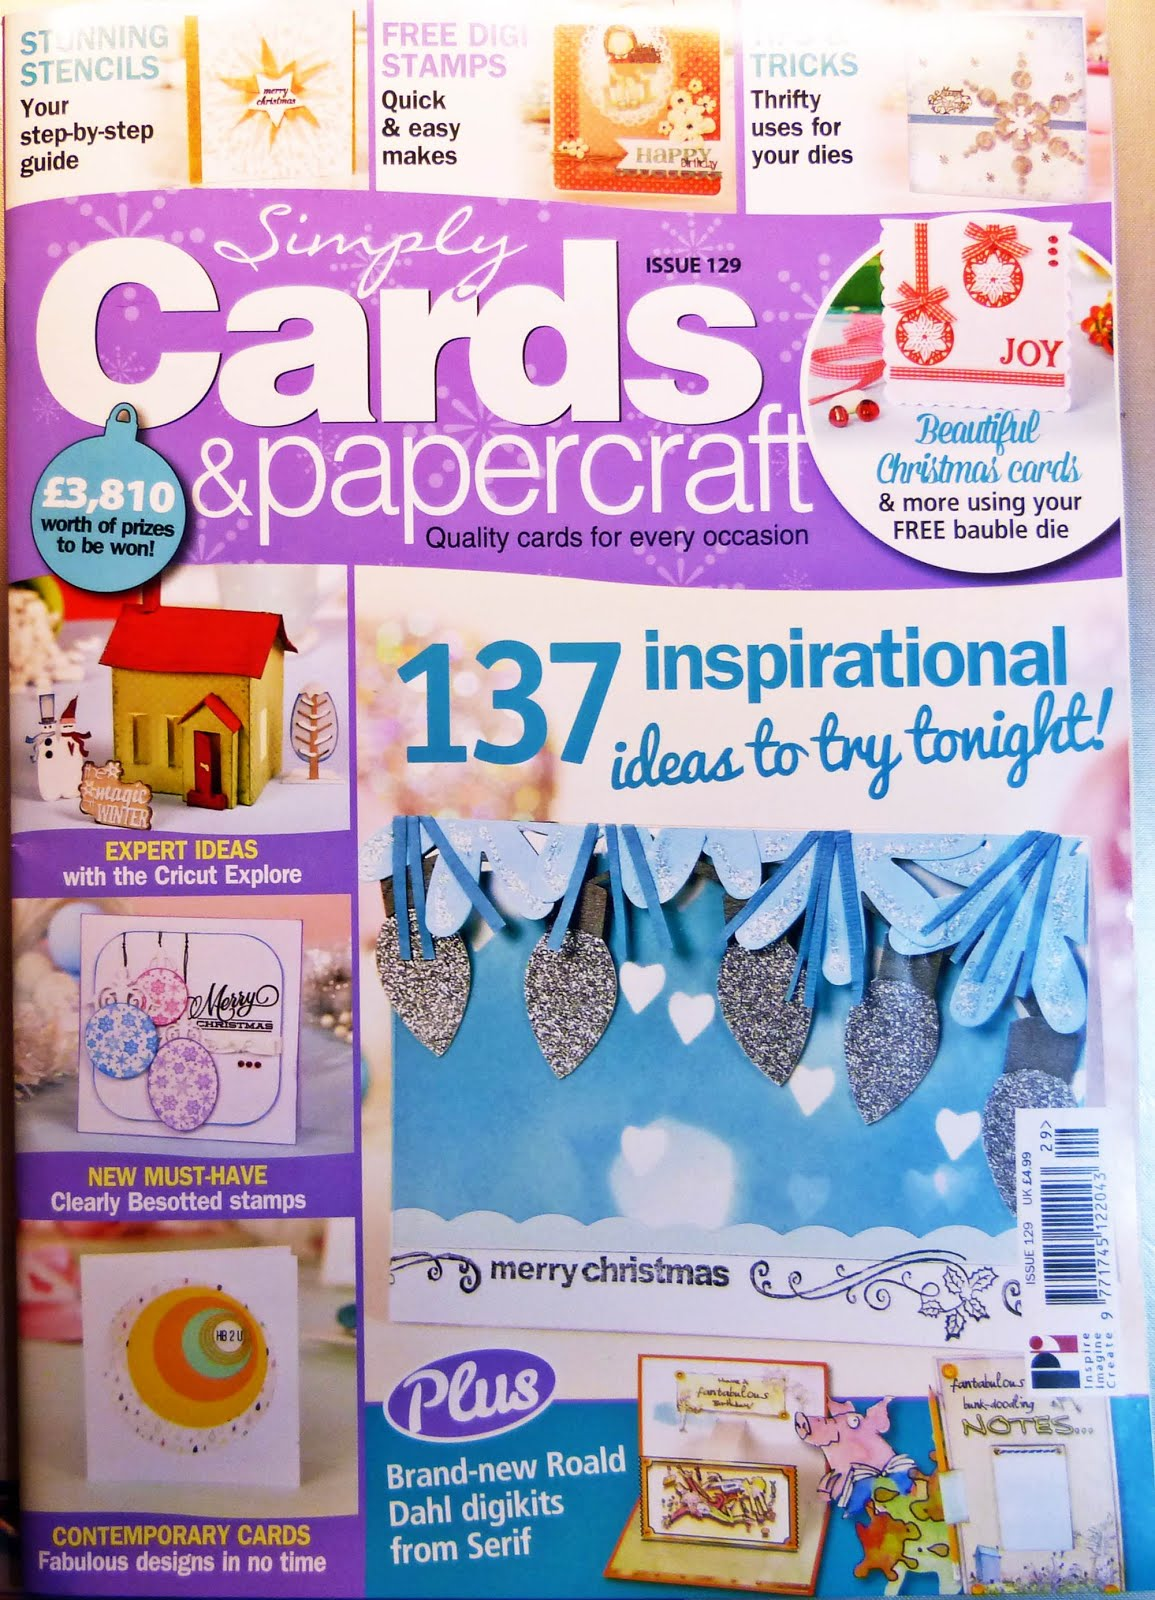 Published Simply Cards & Papercrafts Issue 129